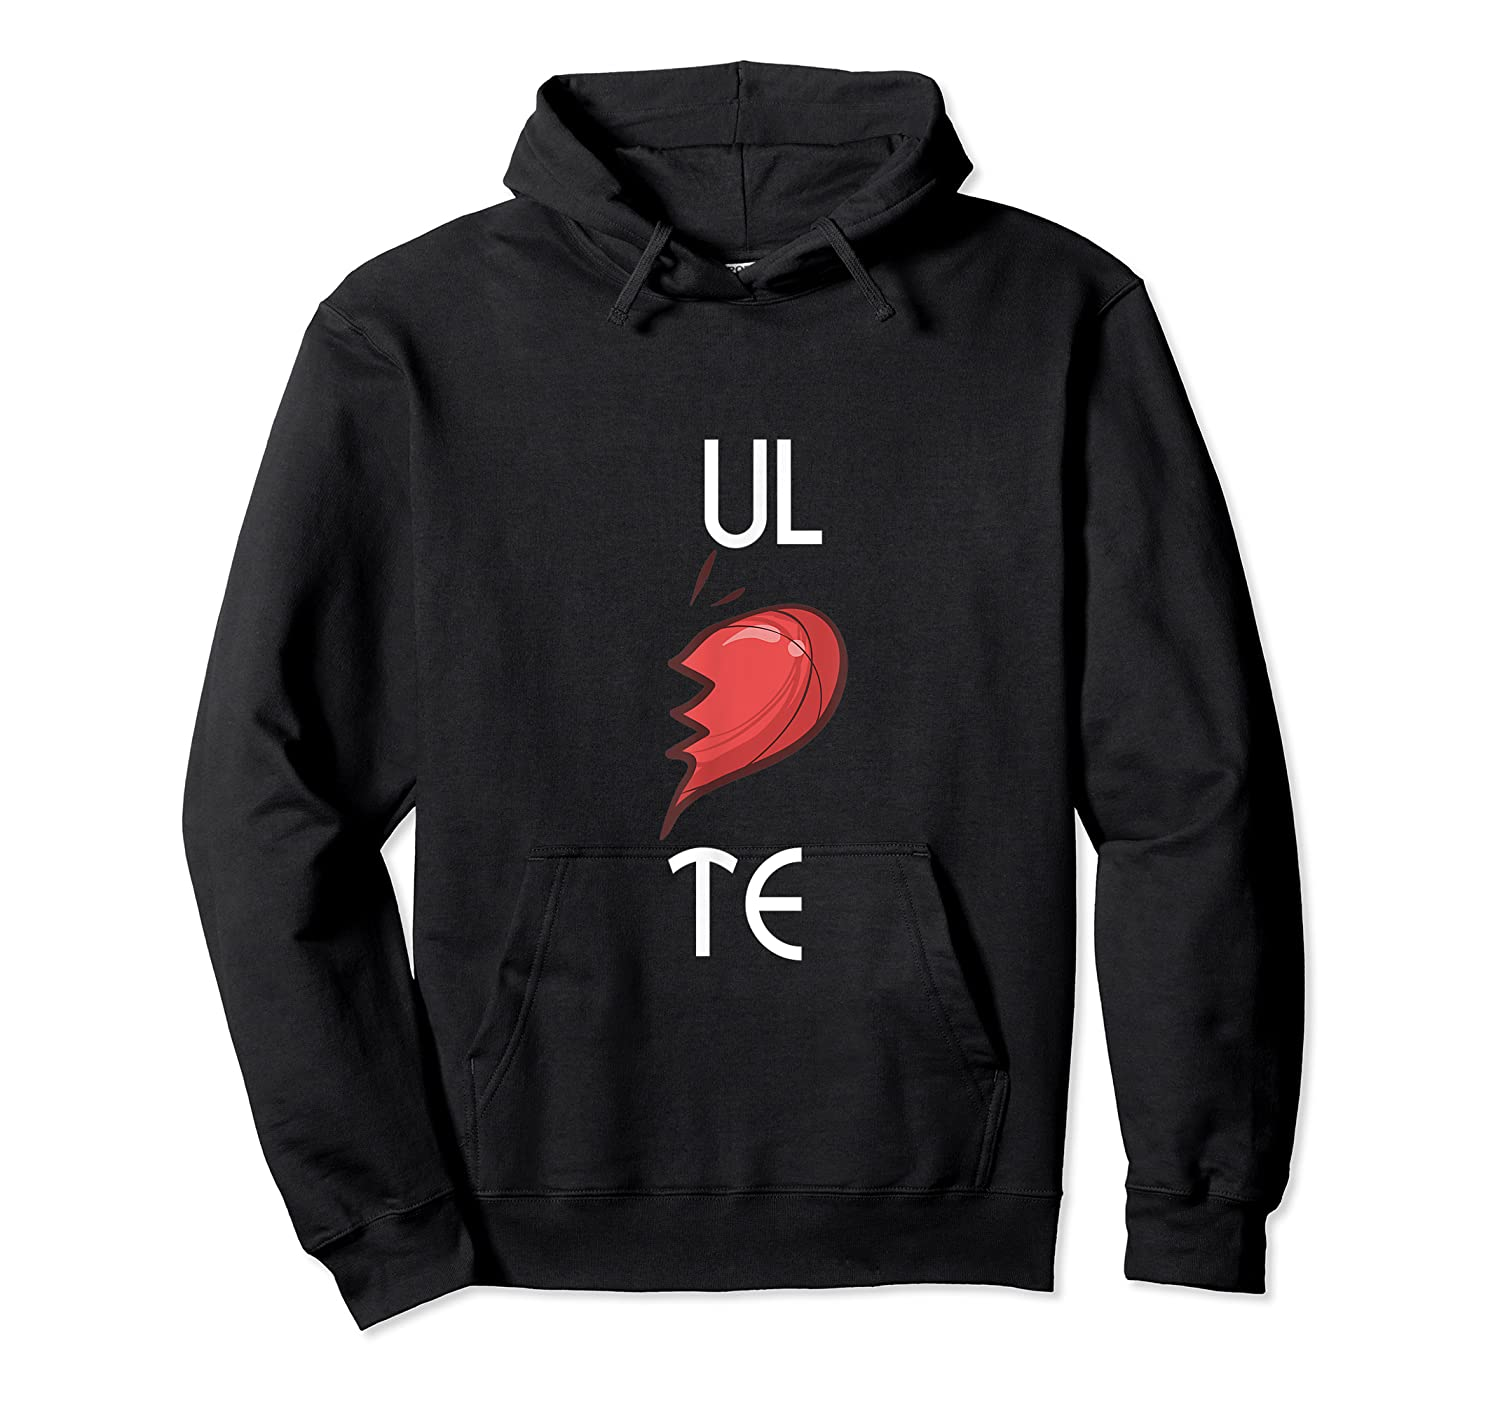 Ul Te Cute Soulmates Valentine S Day 2020 Partners T Shirt Unisex Pullover Hoodie